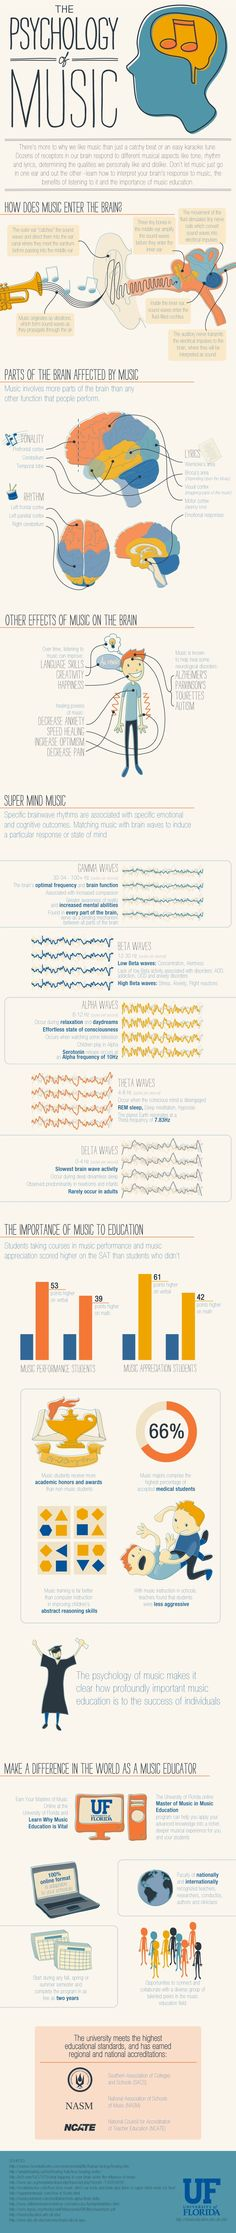 I learnt something from this graphic but it's still that emotional response that amazes me. Time after time.